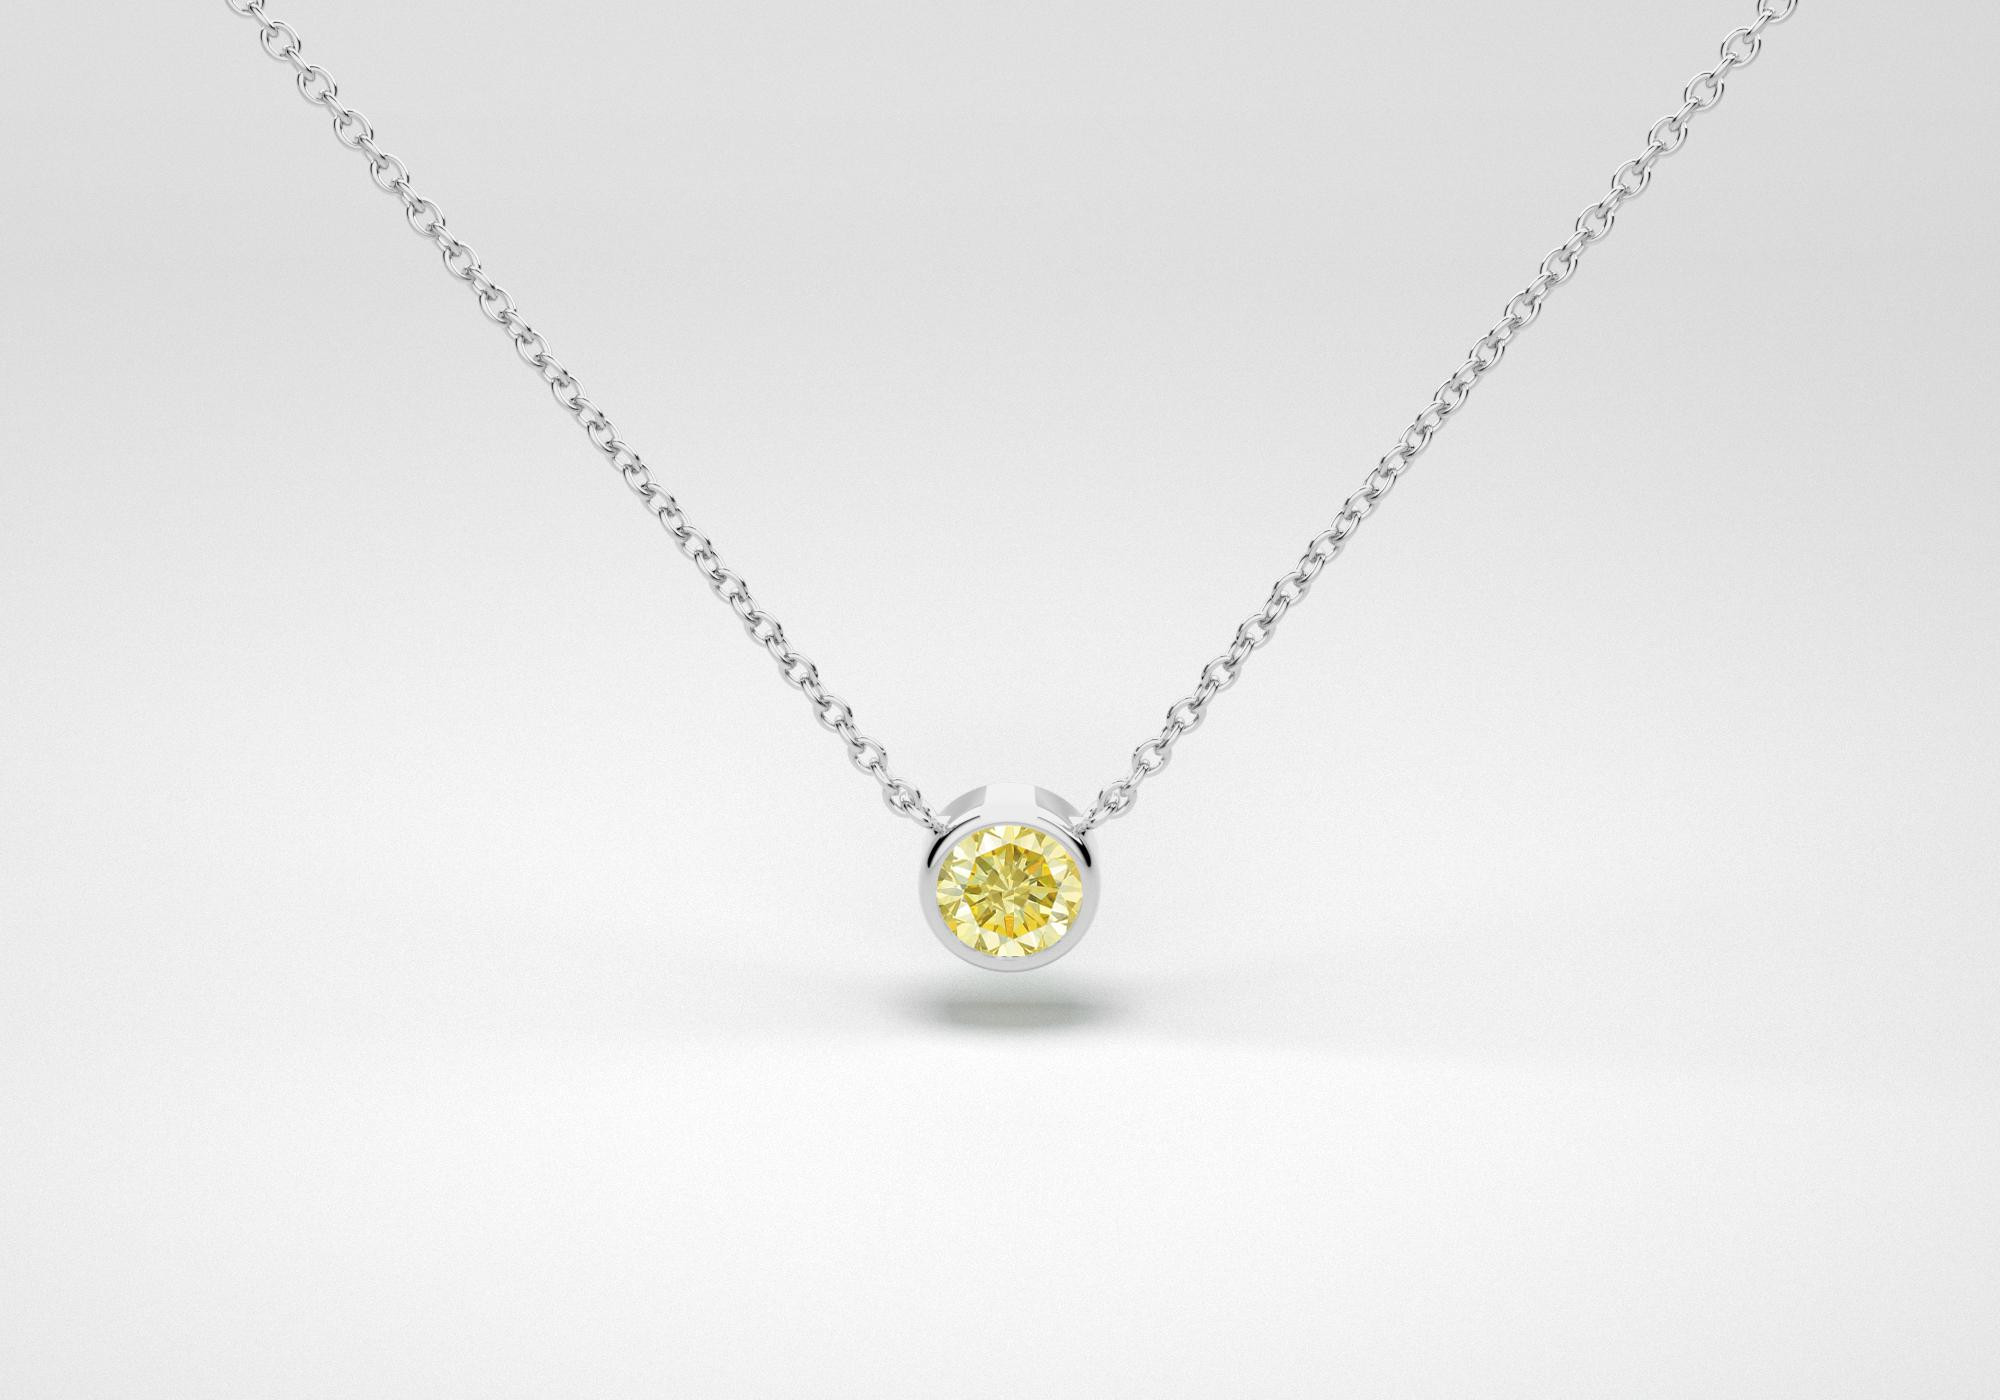 The One Necklace - Canary - White Gold 18 Kt